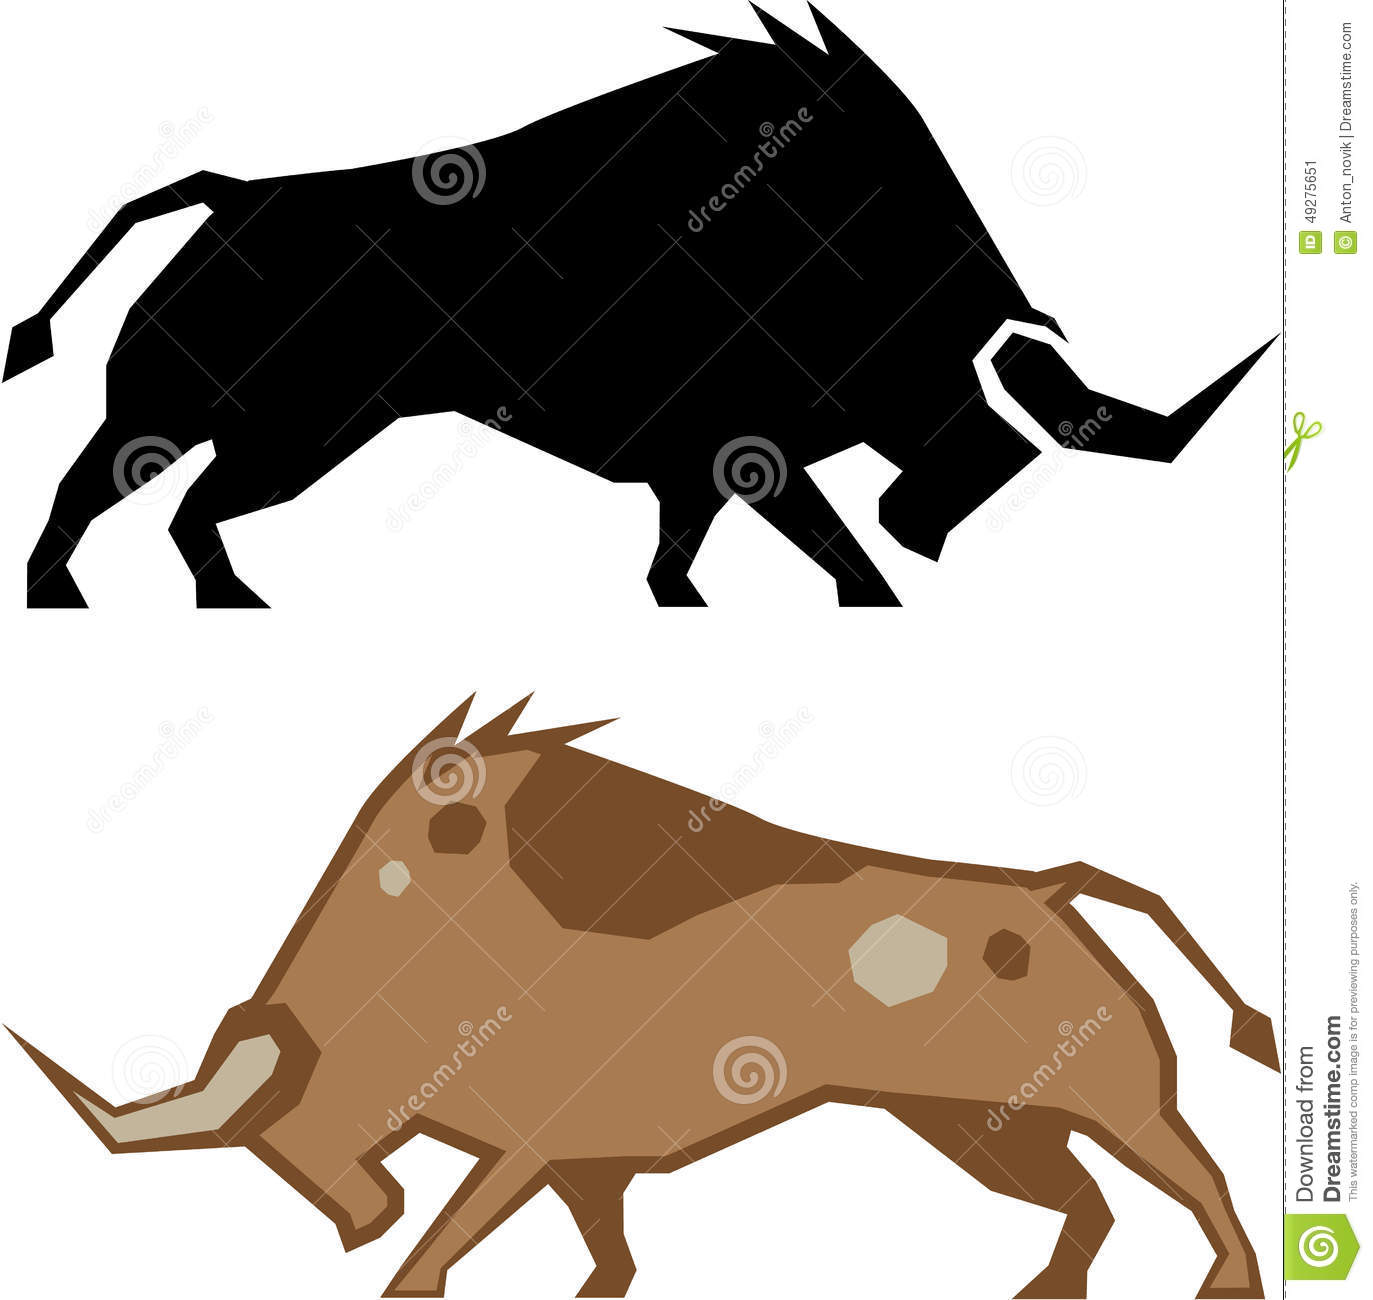 Raging Bull Stock Vector - Image: 49275651